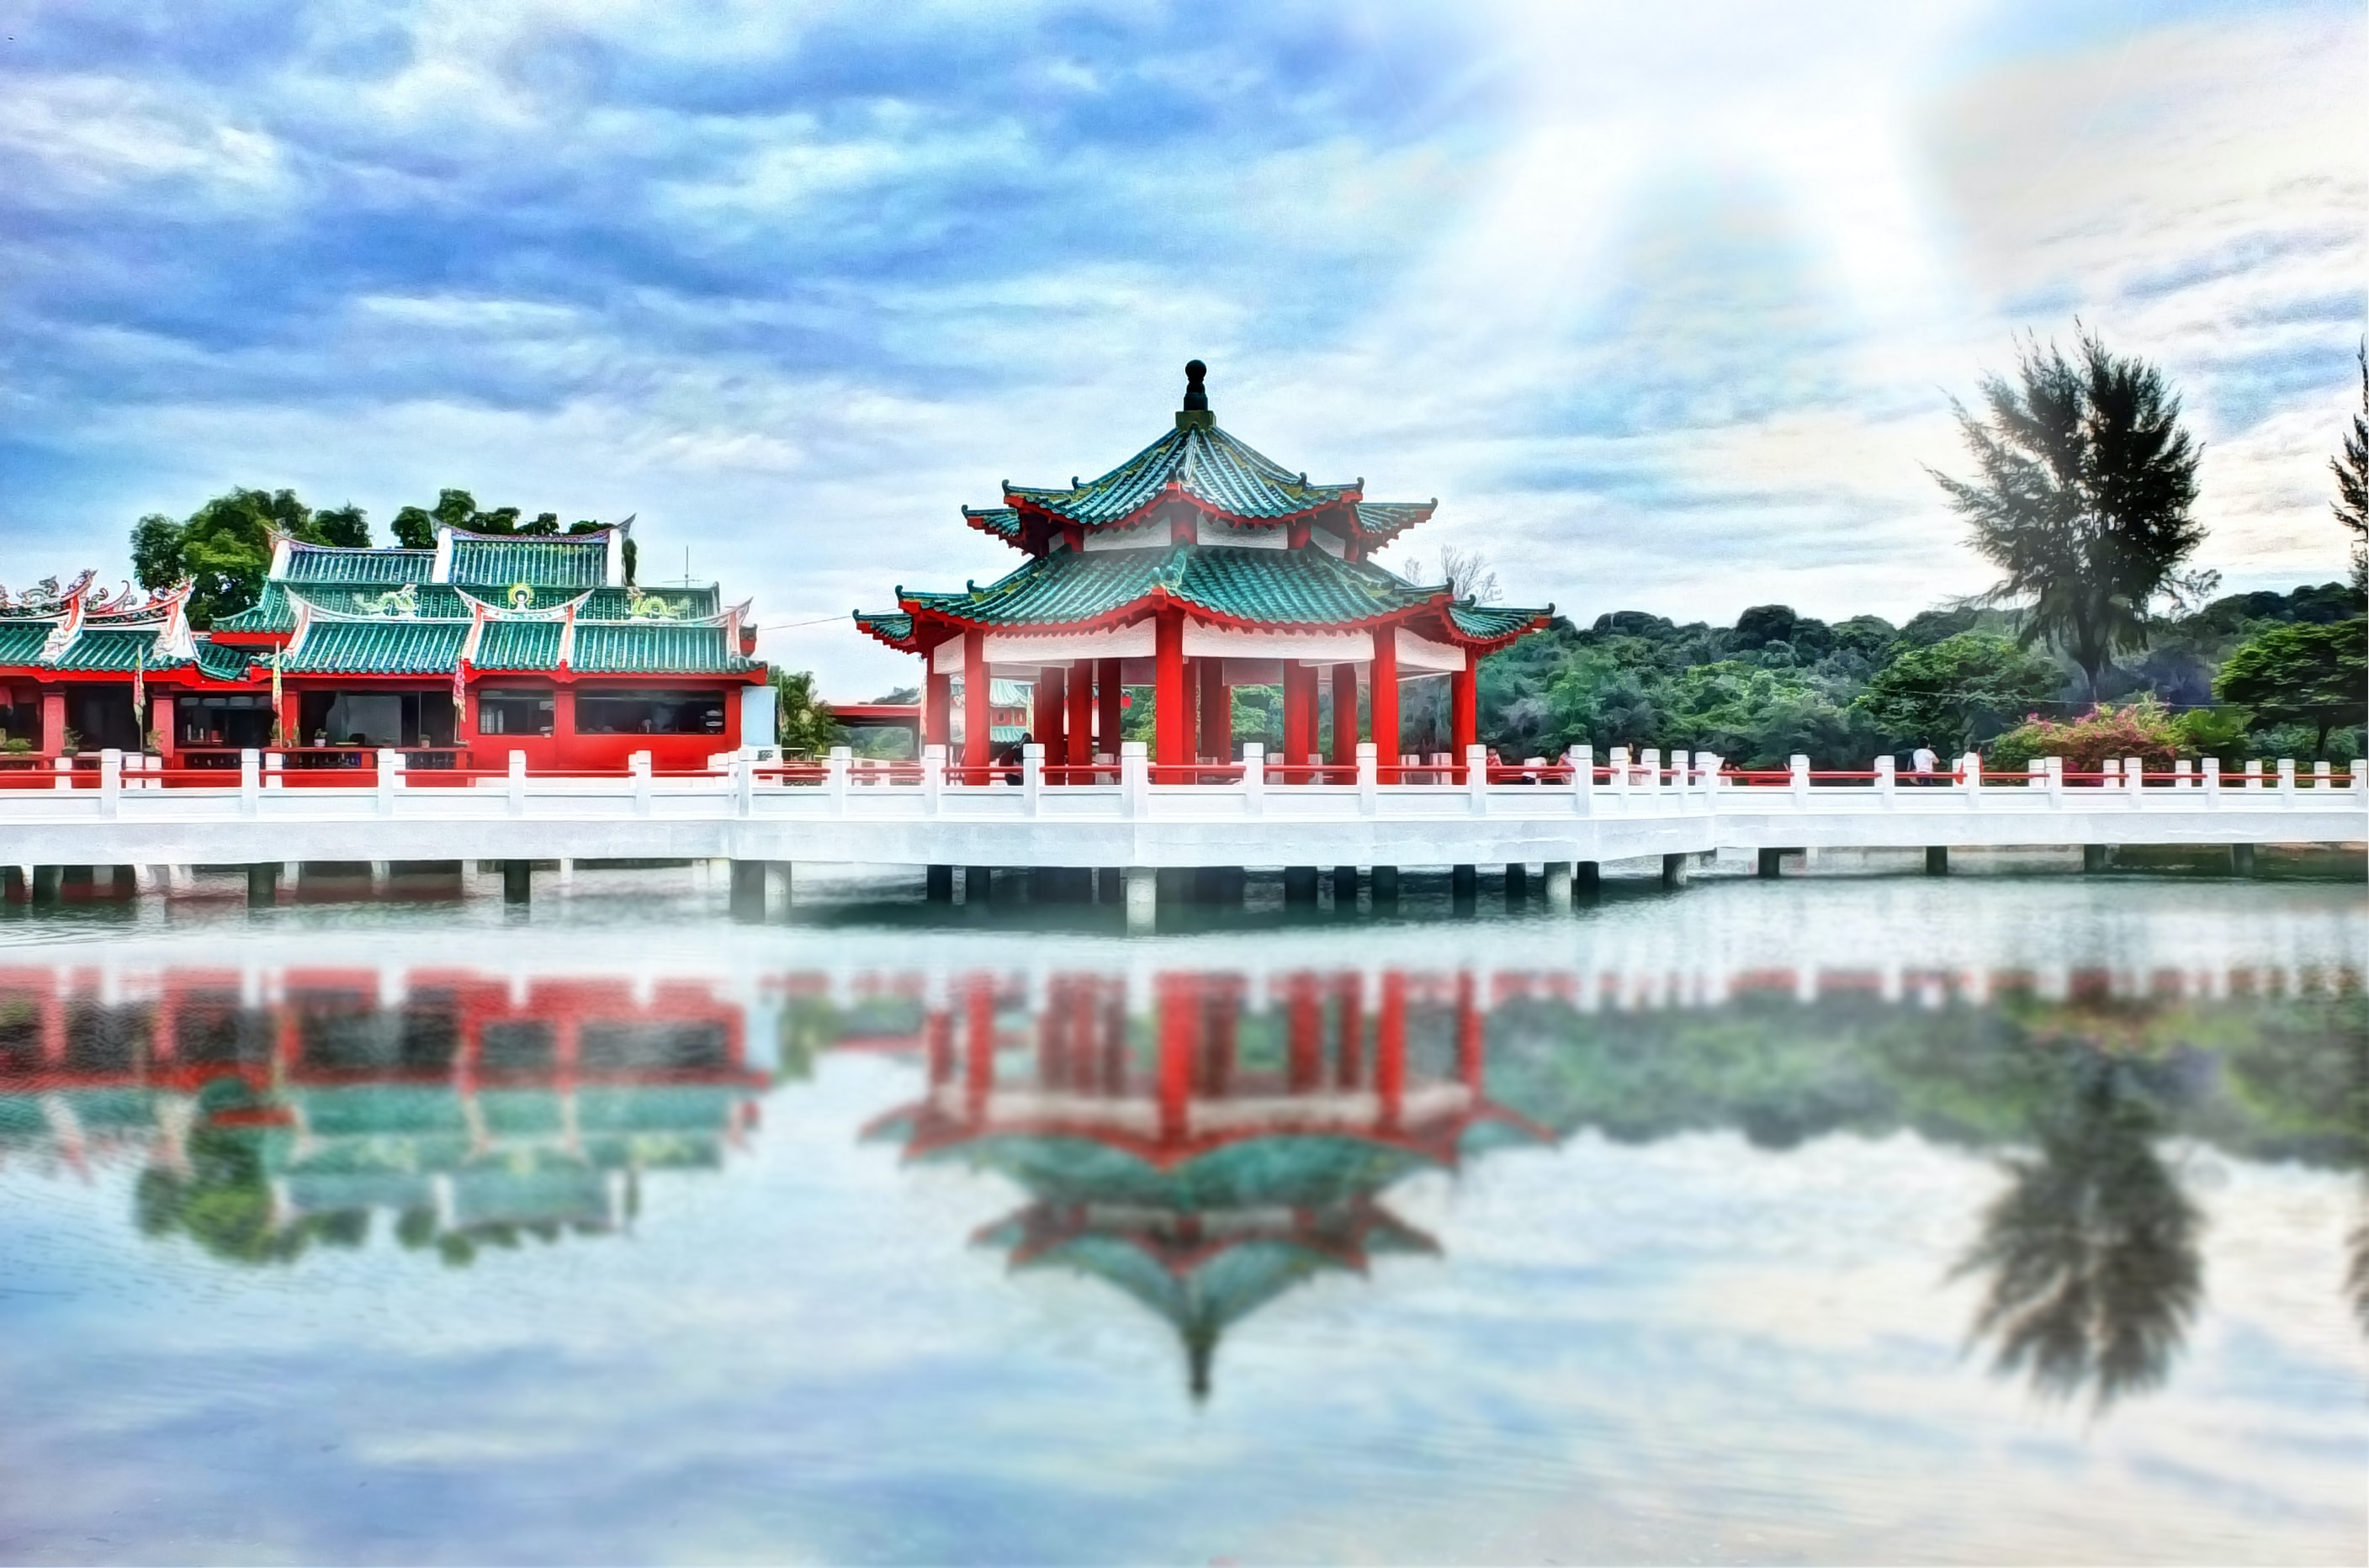 Chinese temple near calm body of water